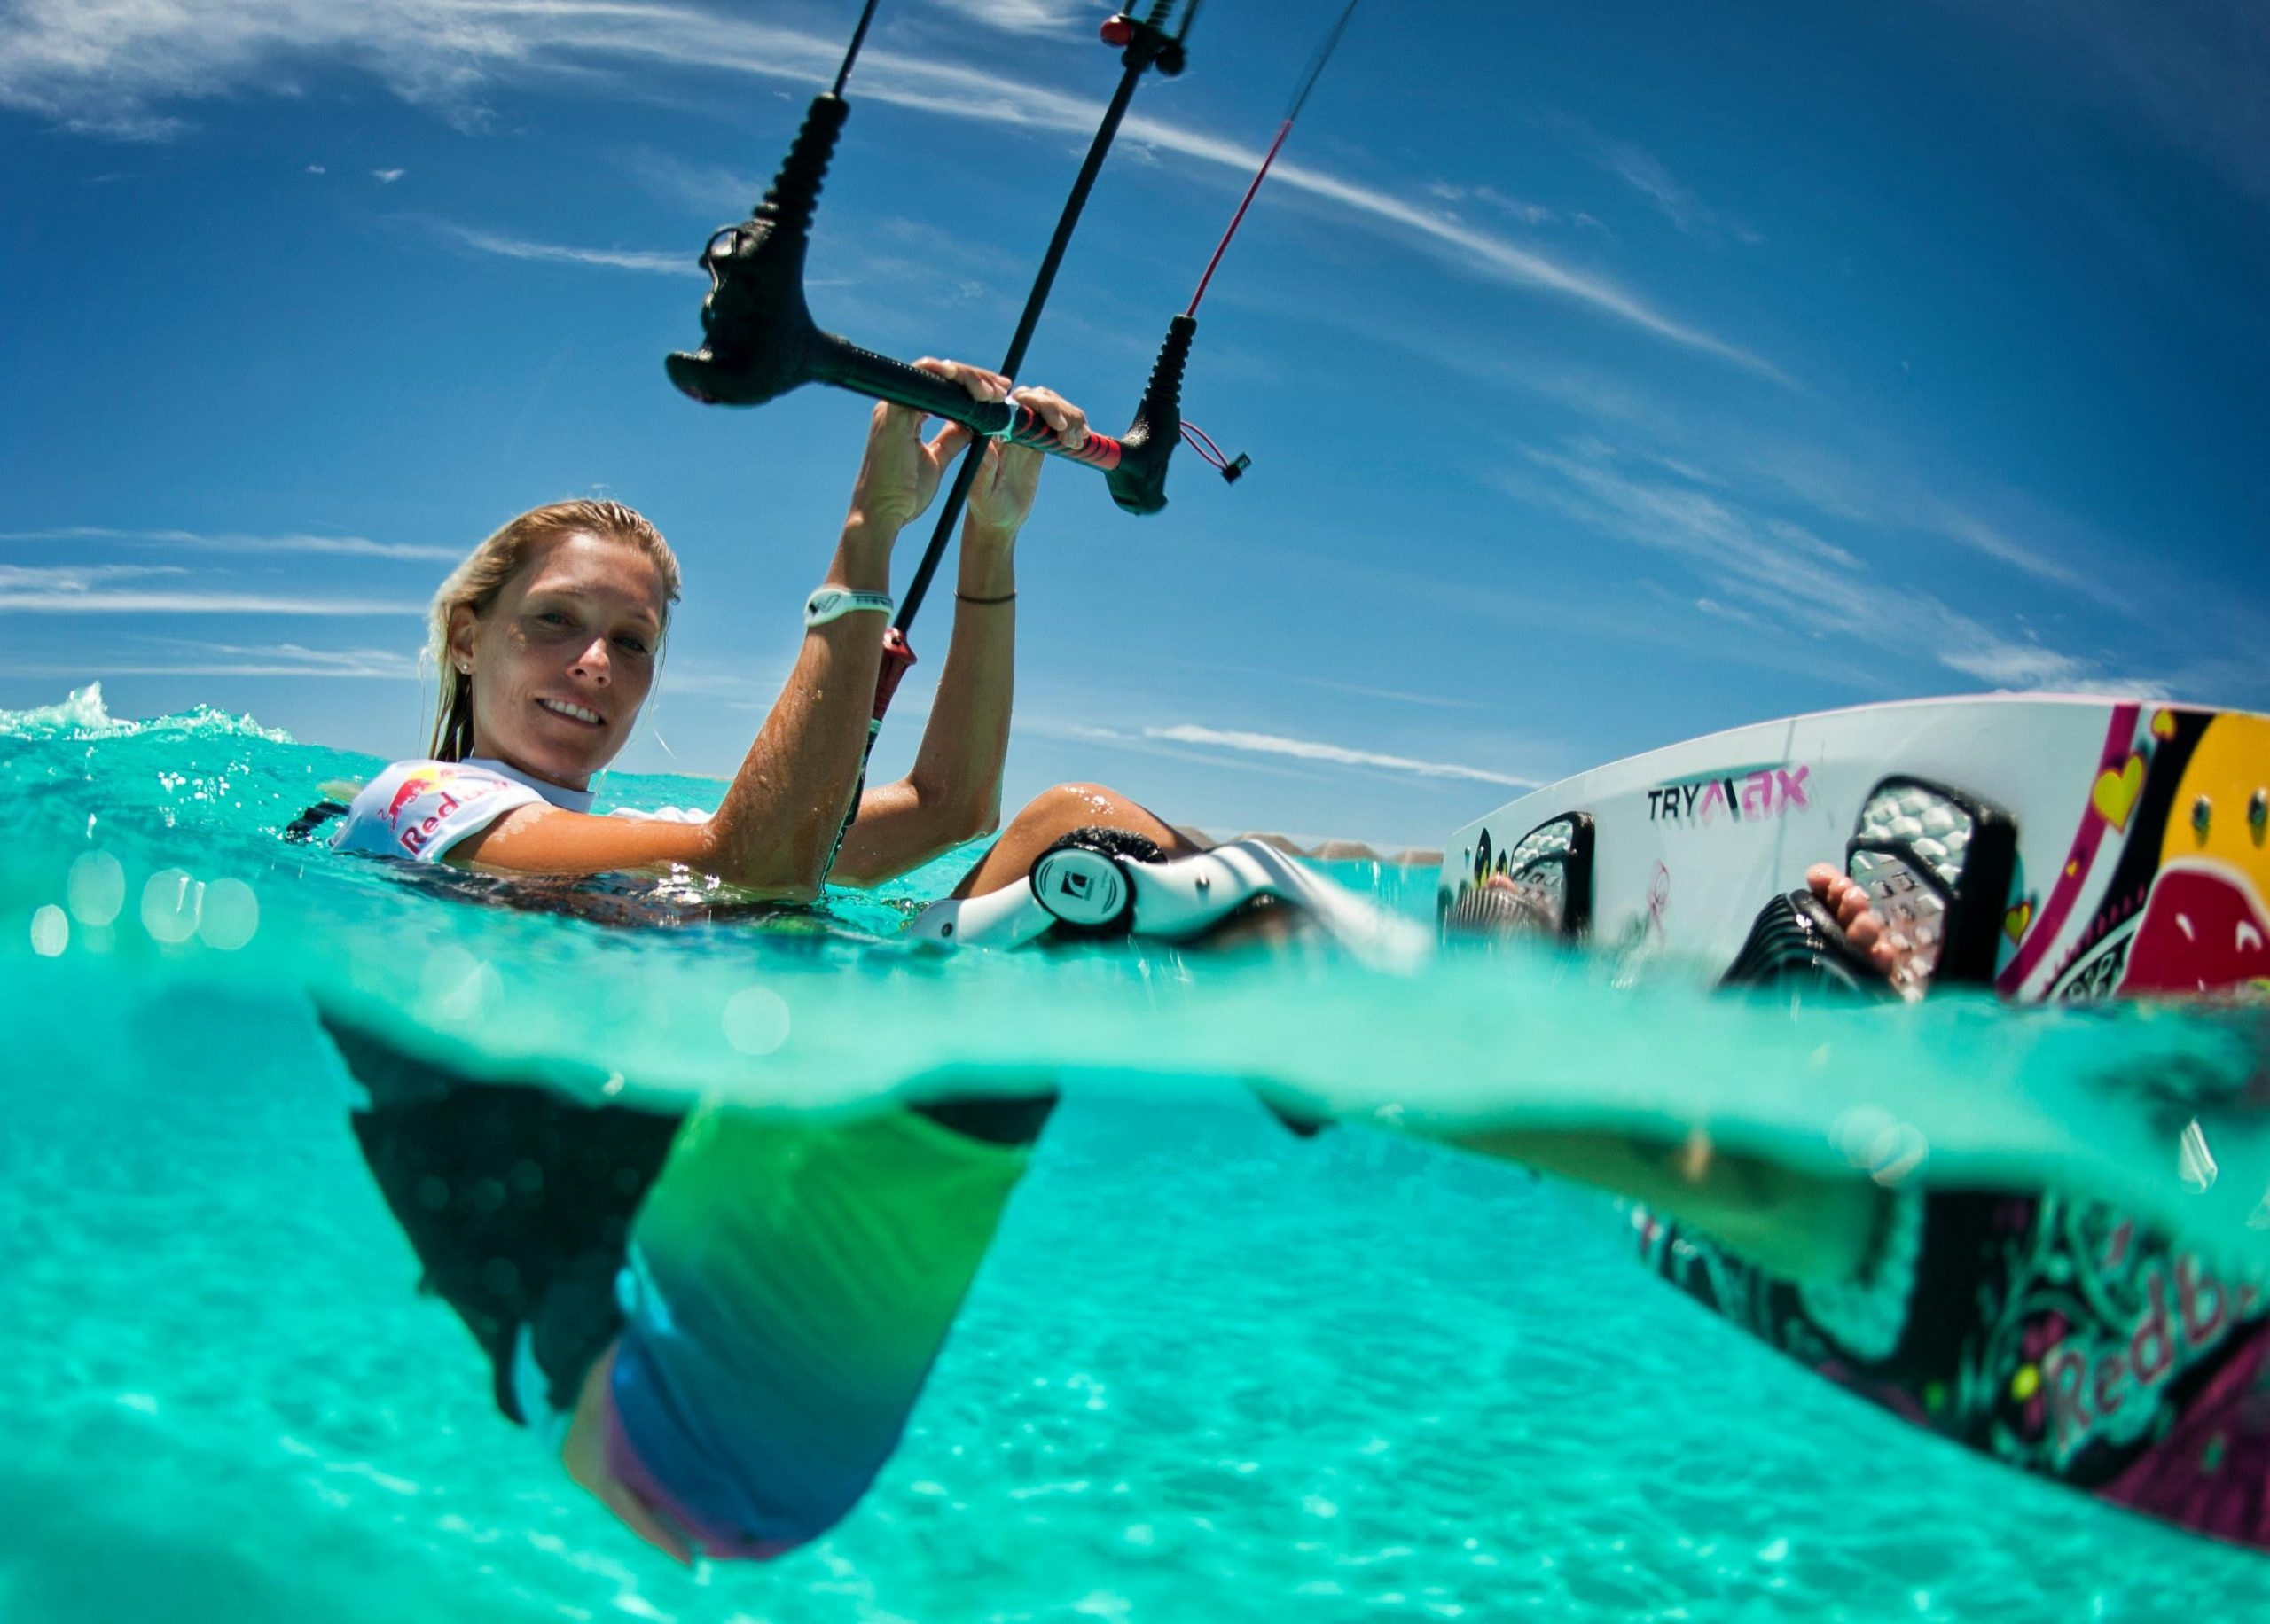 Commonly Asked Questions About Learning to Kitesurf